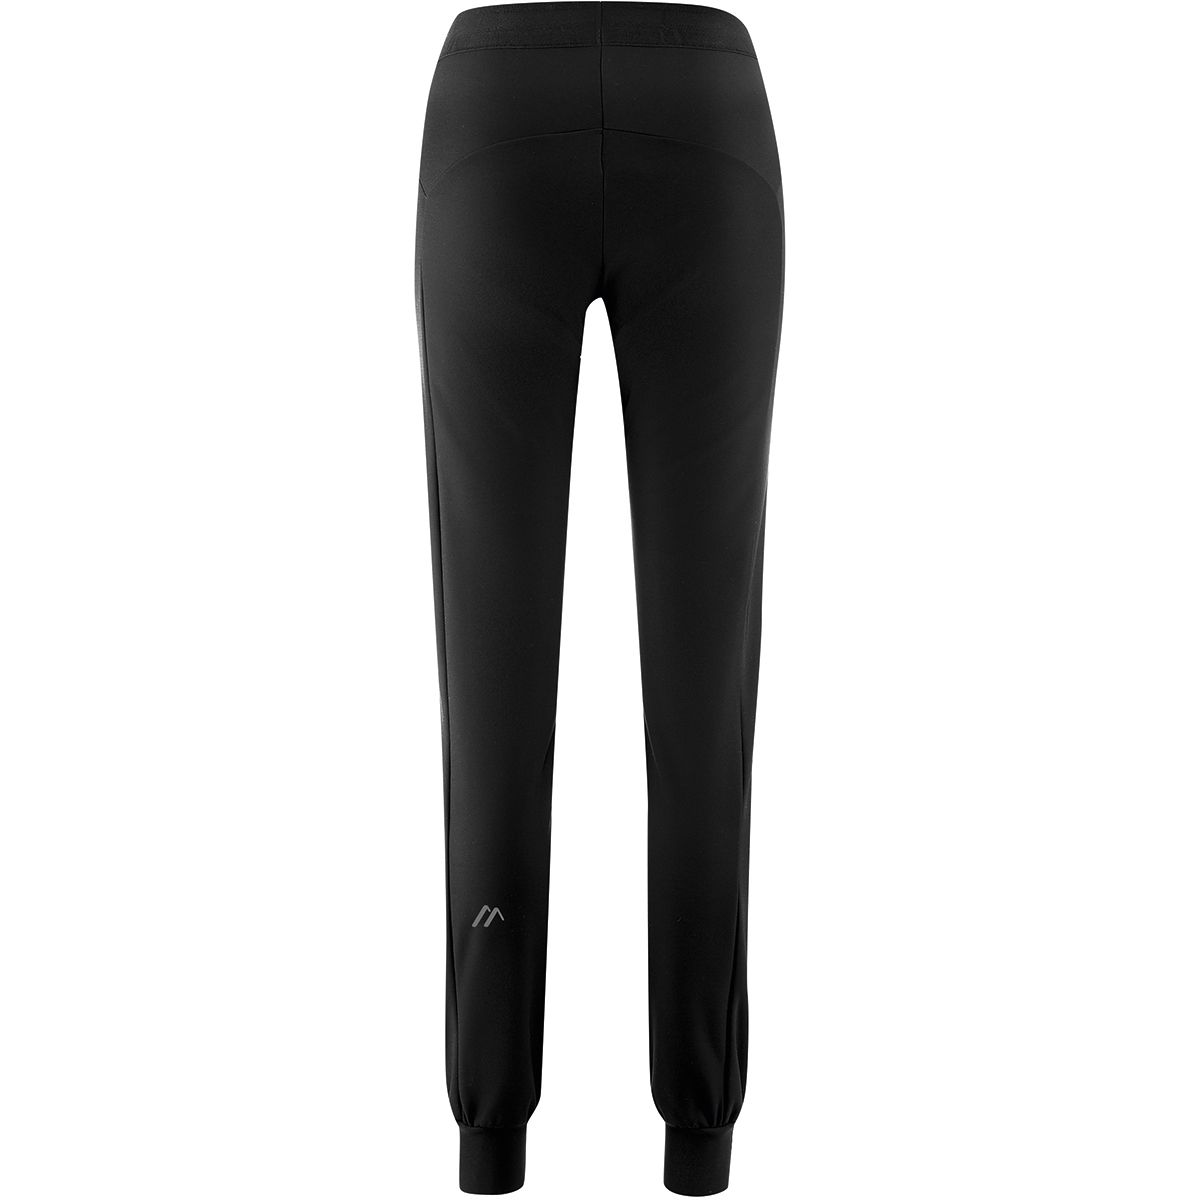 Maier Sports Damen Damen Unakit Leggings 232309 schwarz